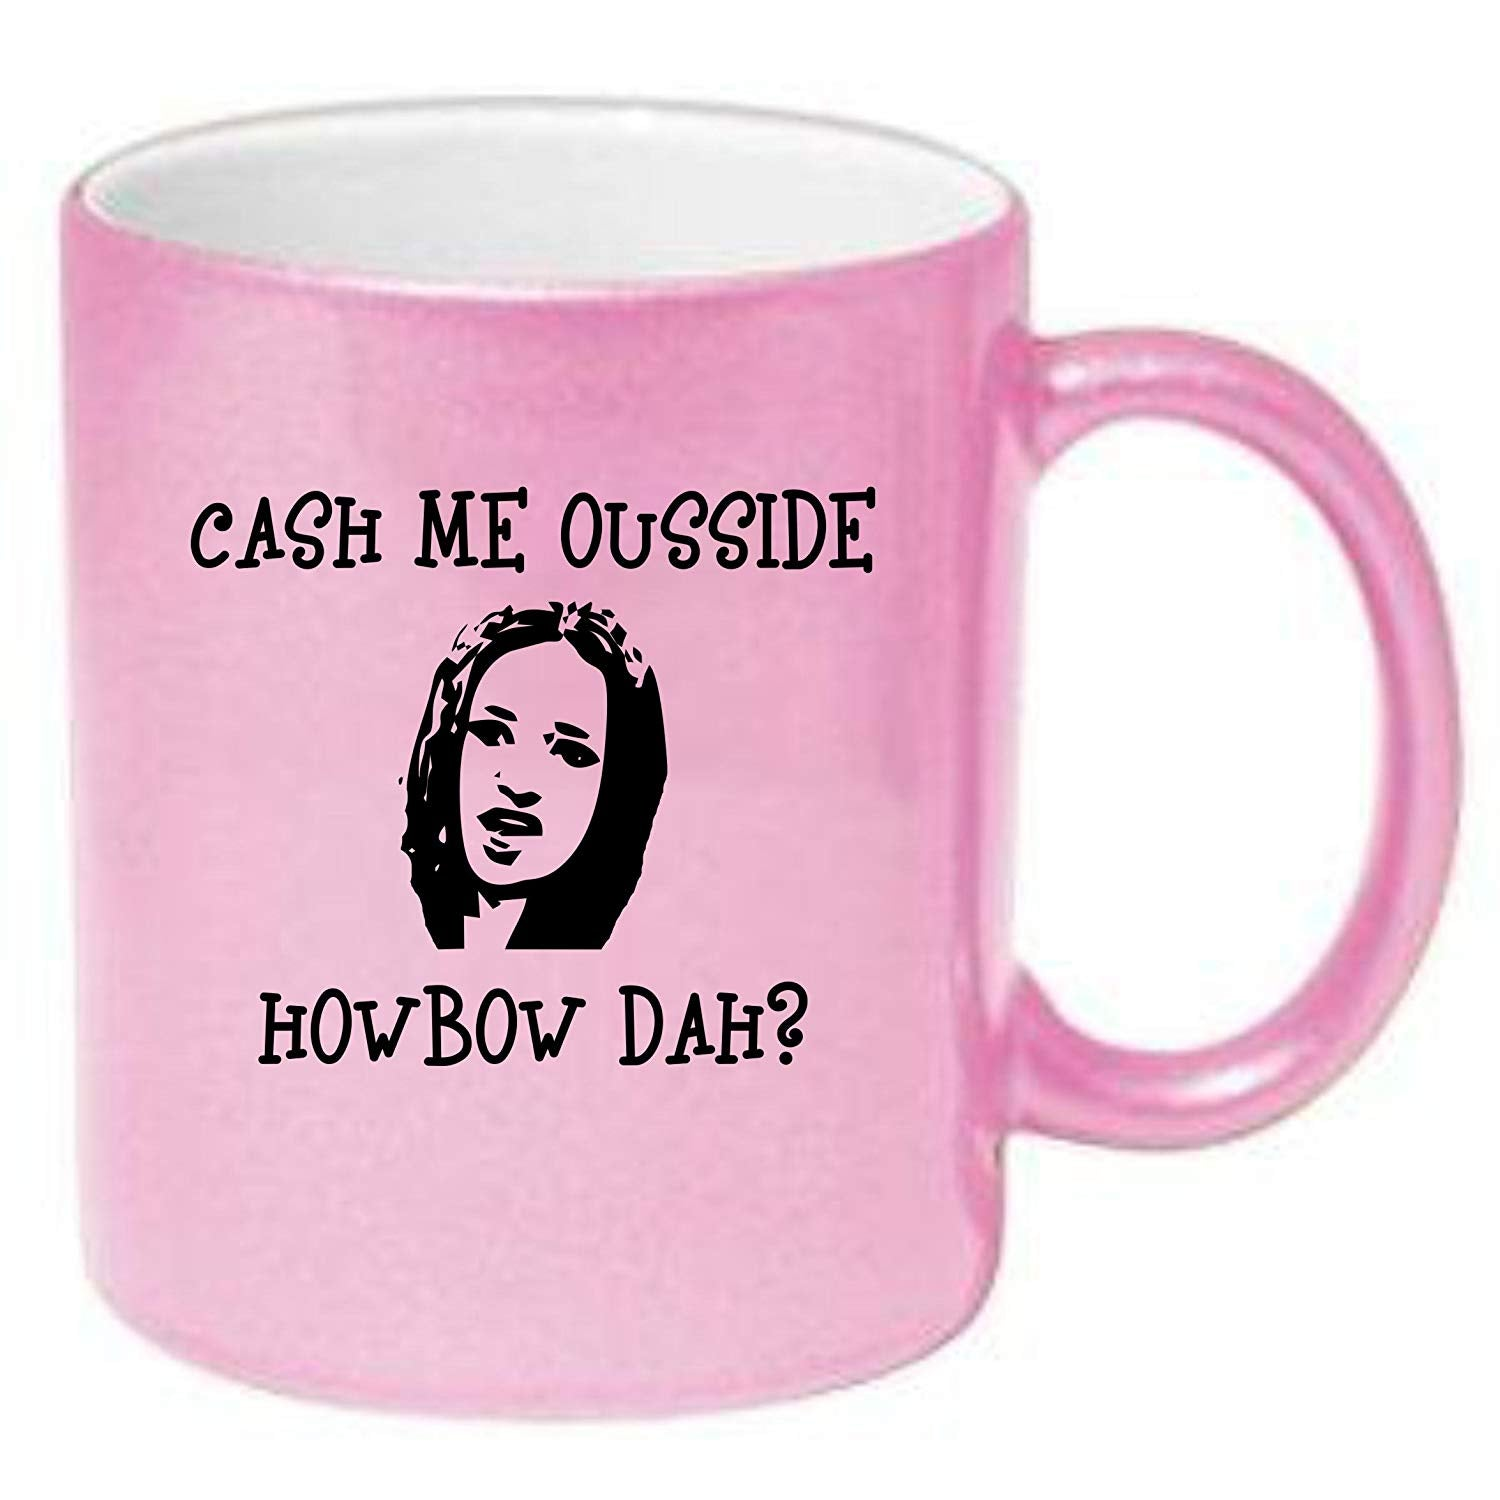 Cash Me Ousside Howbow Dah Parody? Funny Coffee Mug Tea Cup Ceramic or Stainless Steel by BeeGeeTees